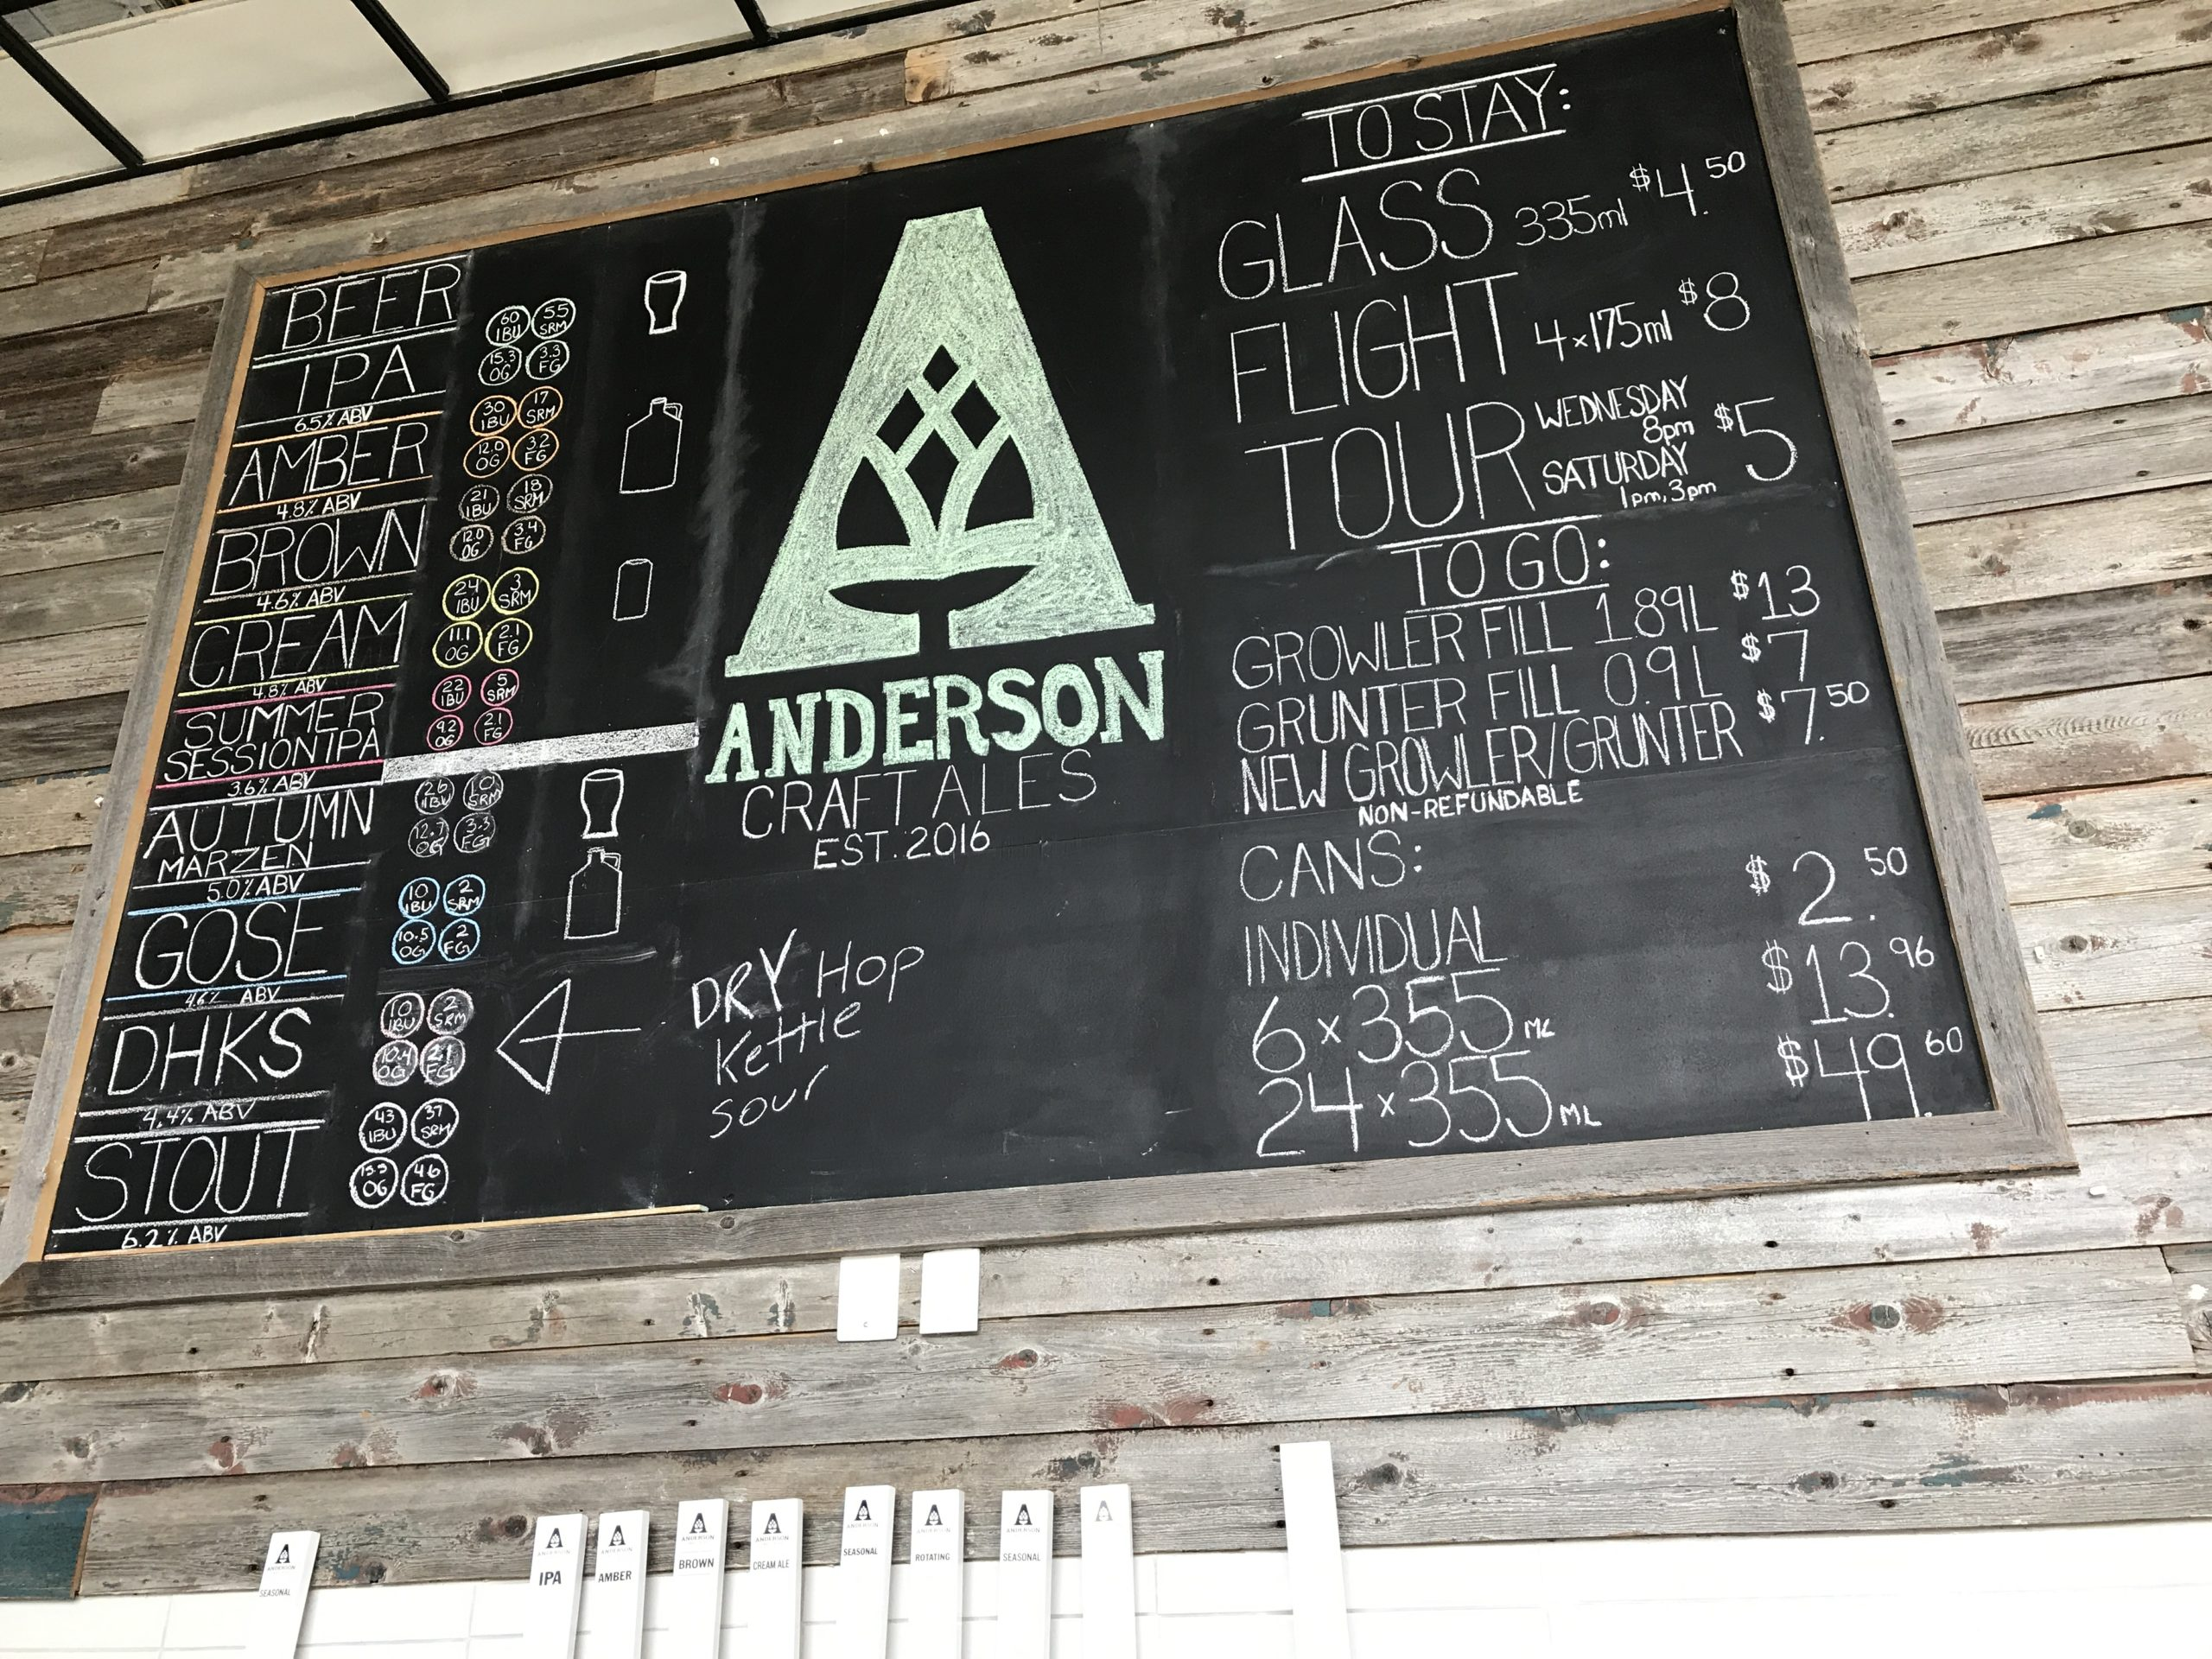 Anderson Craft Ales continues to grow after one year in the business